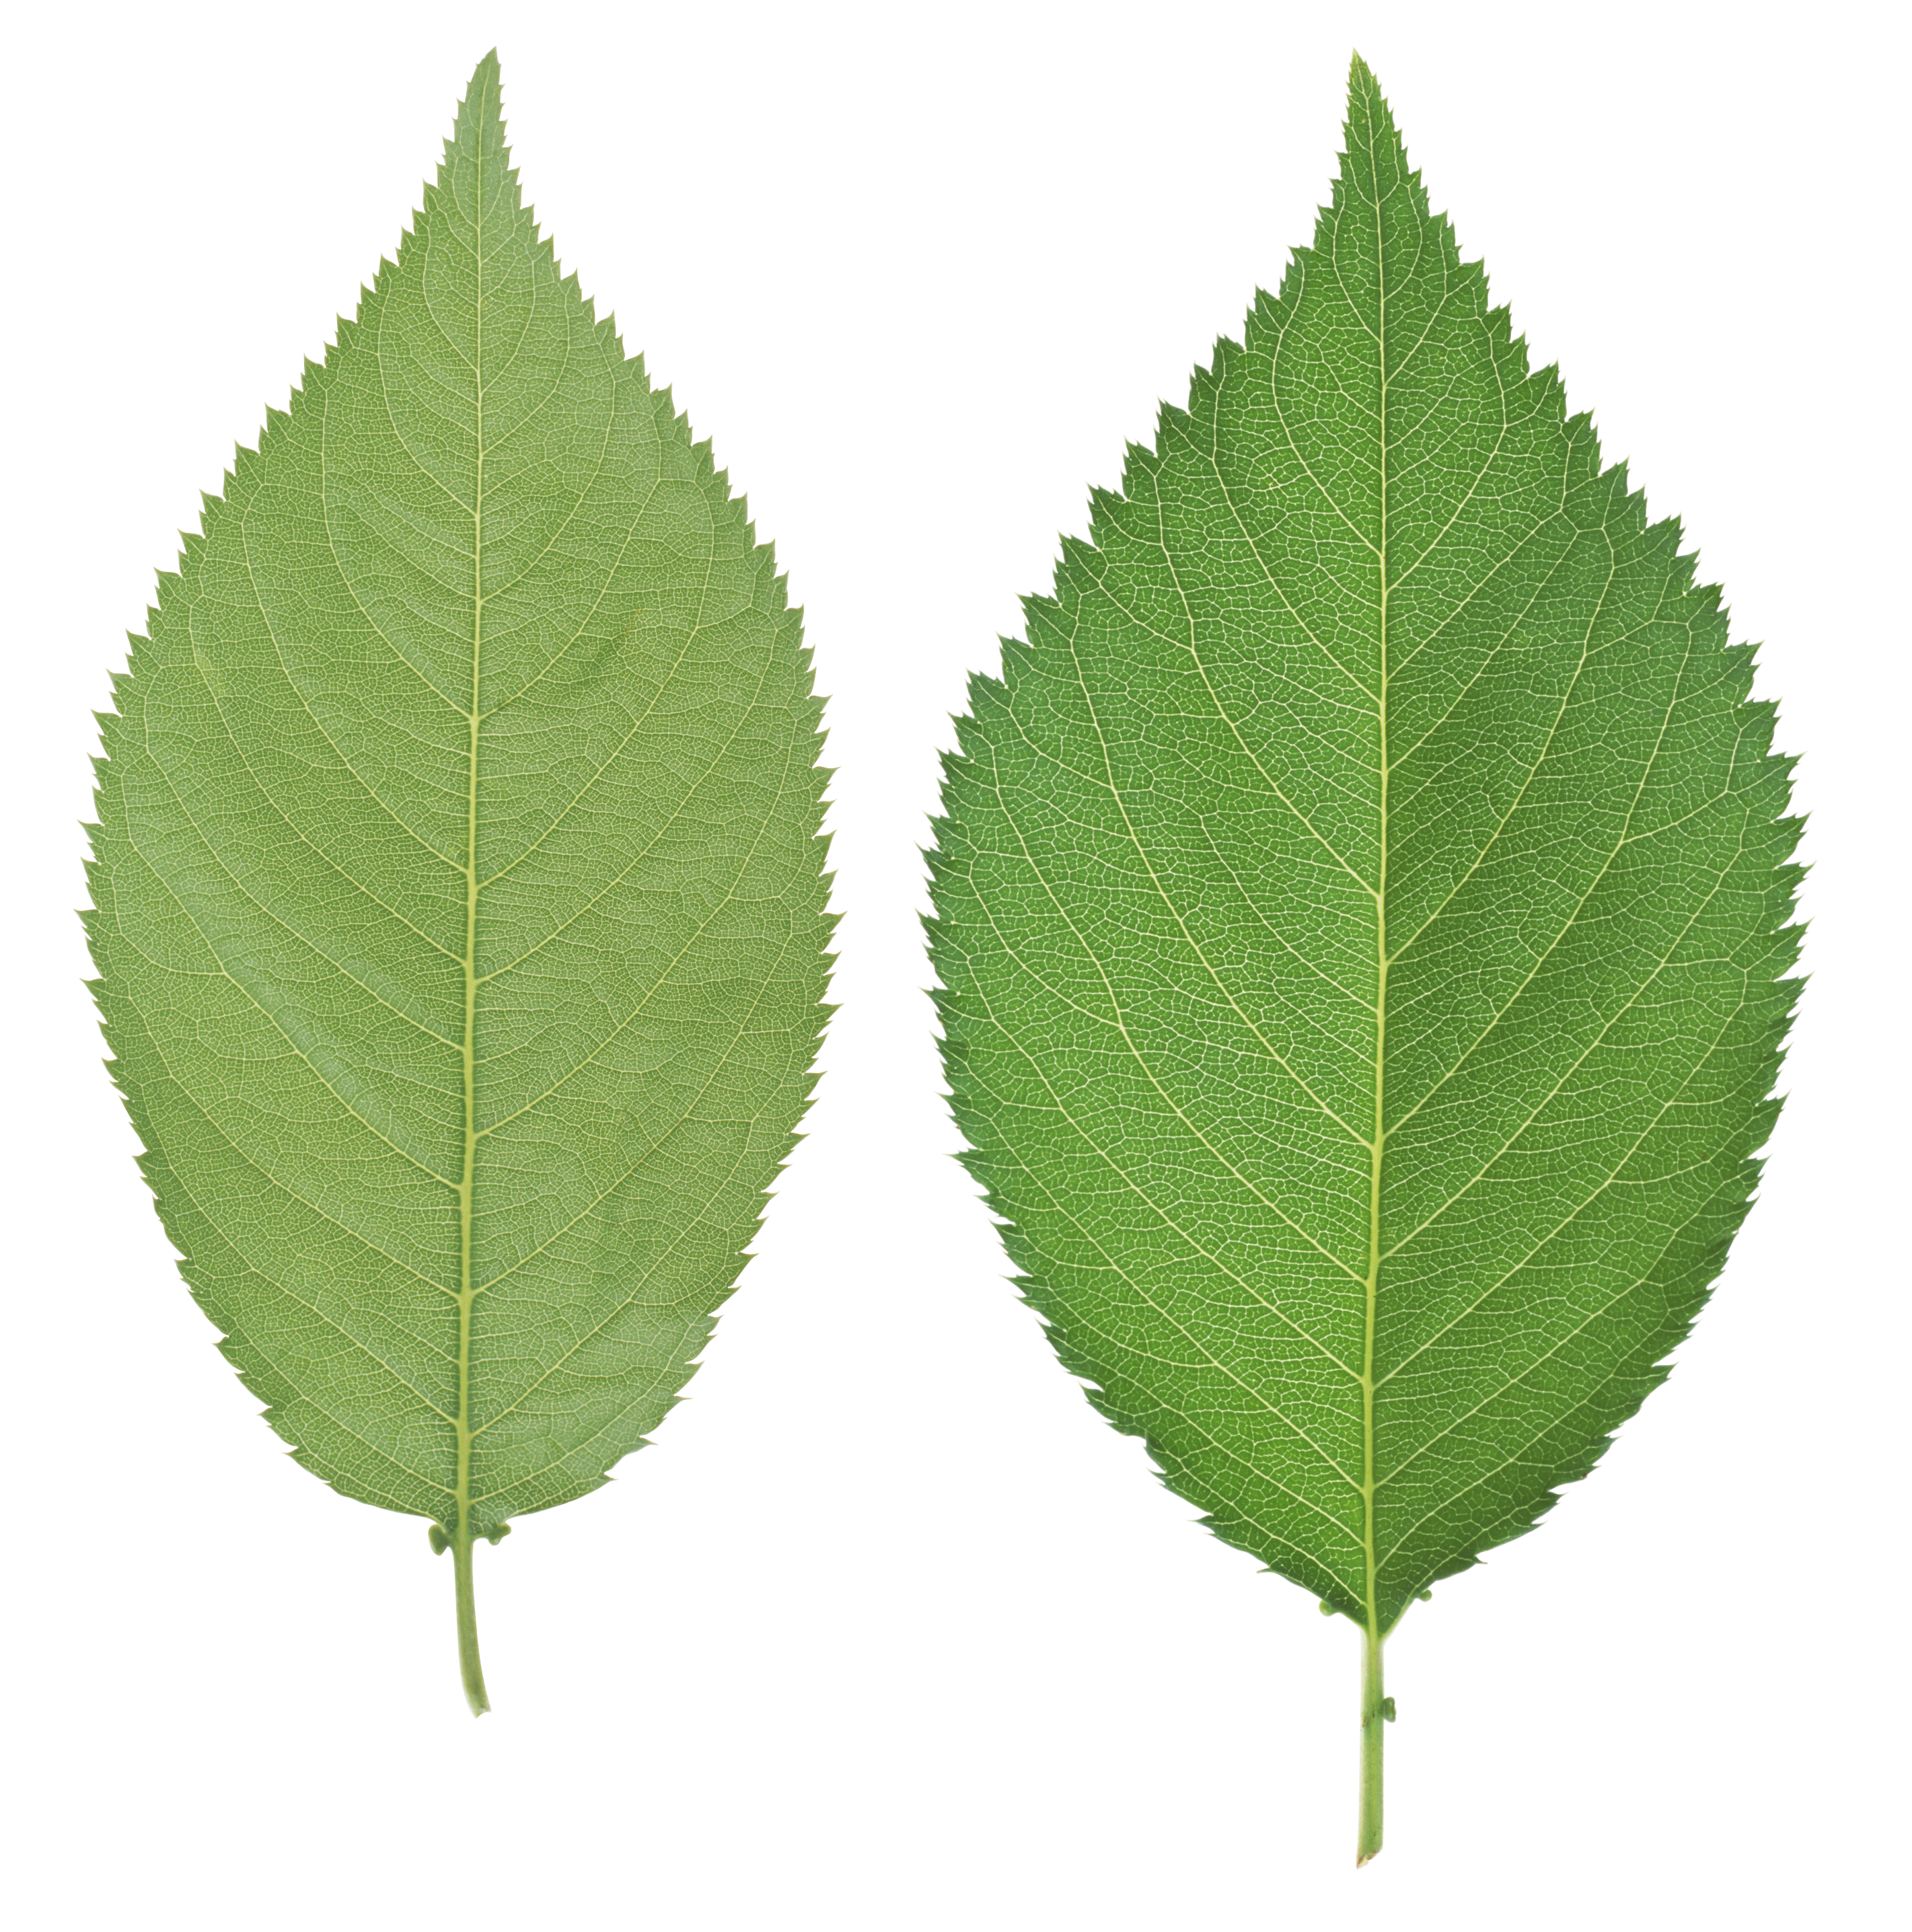 Green Leafs Png image #44866